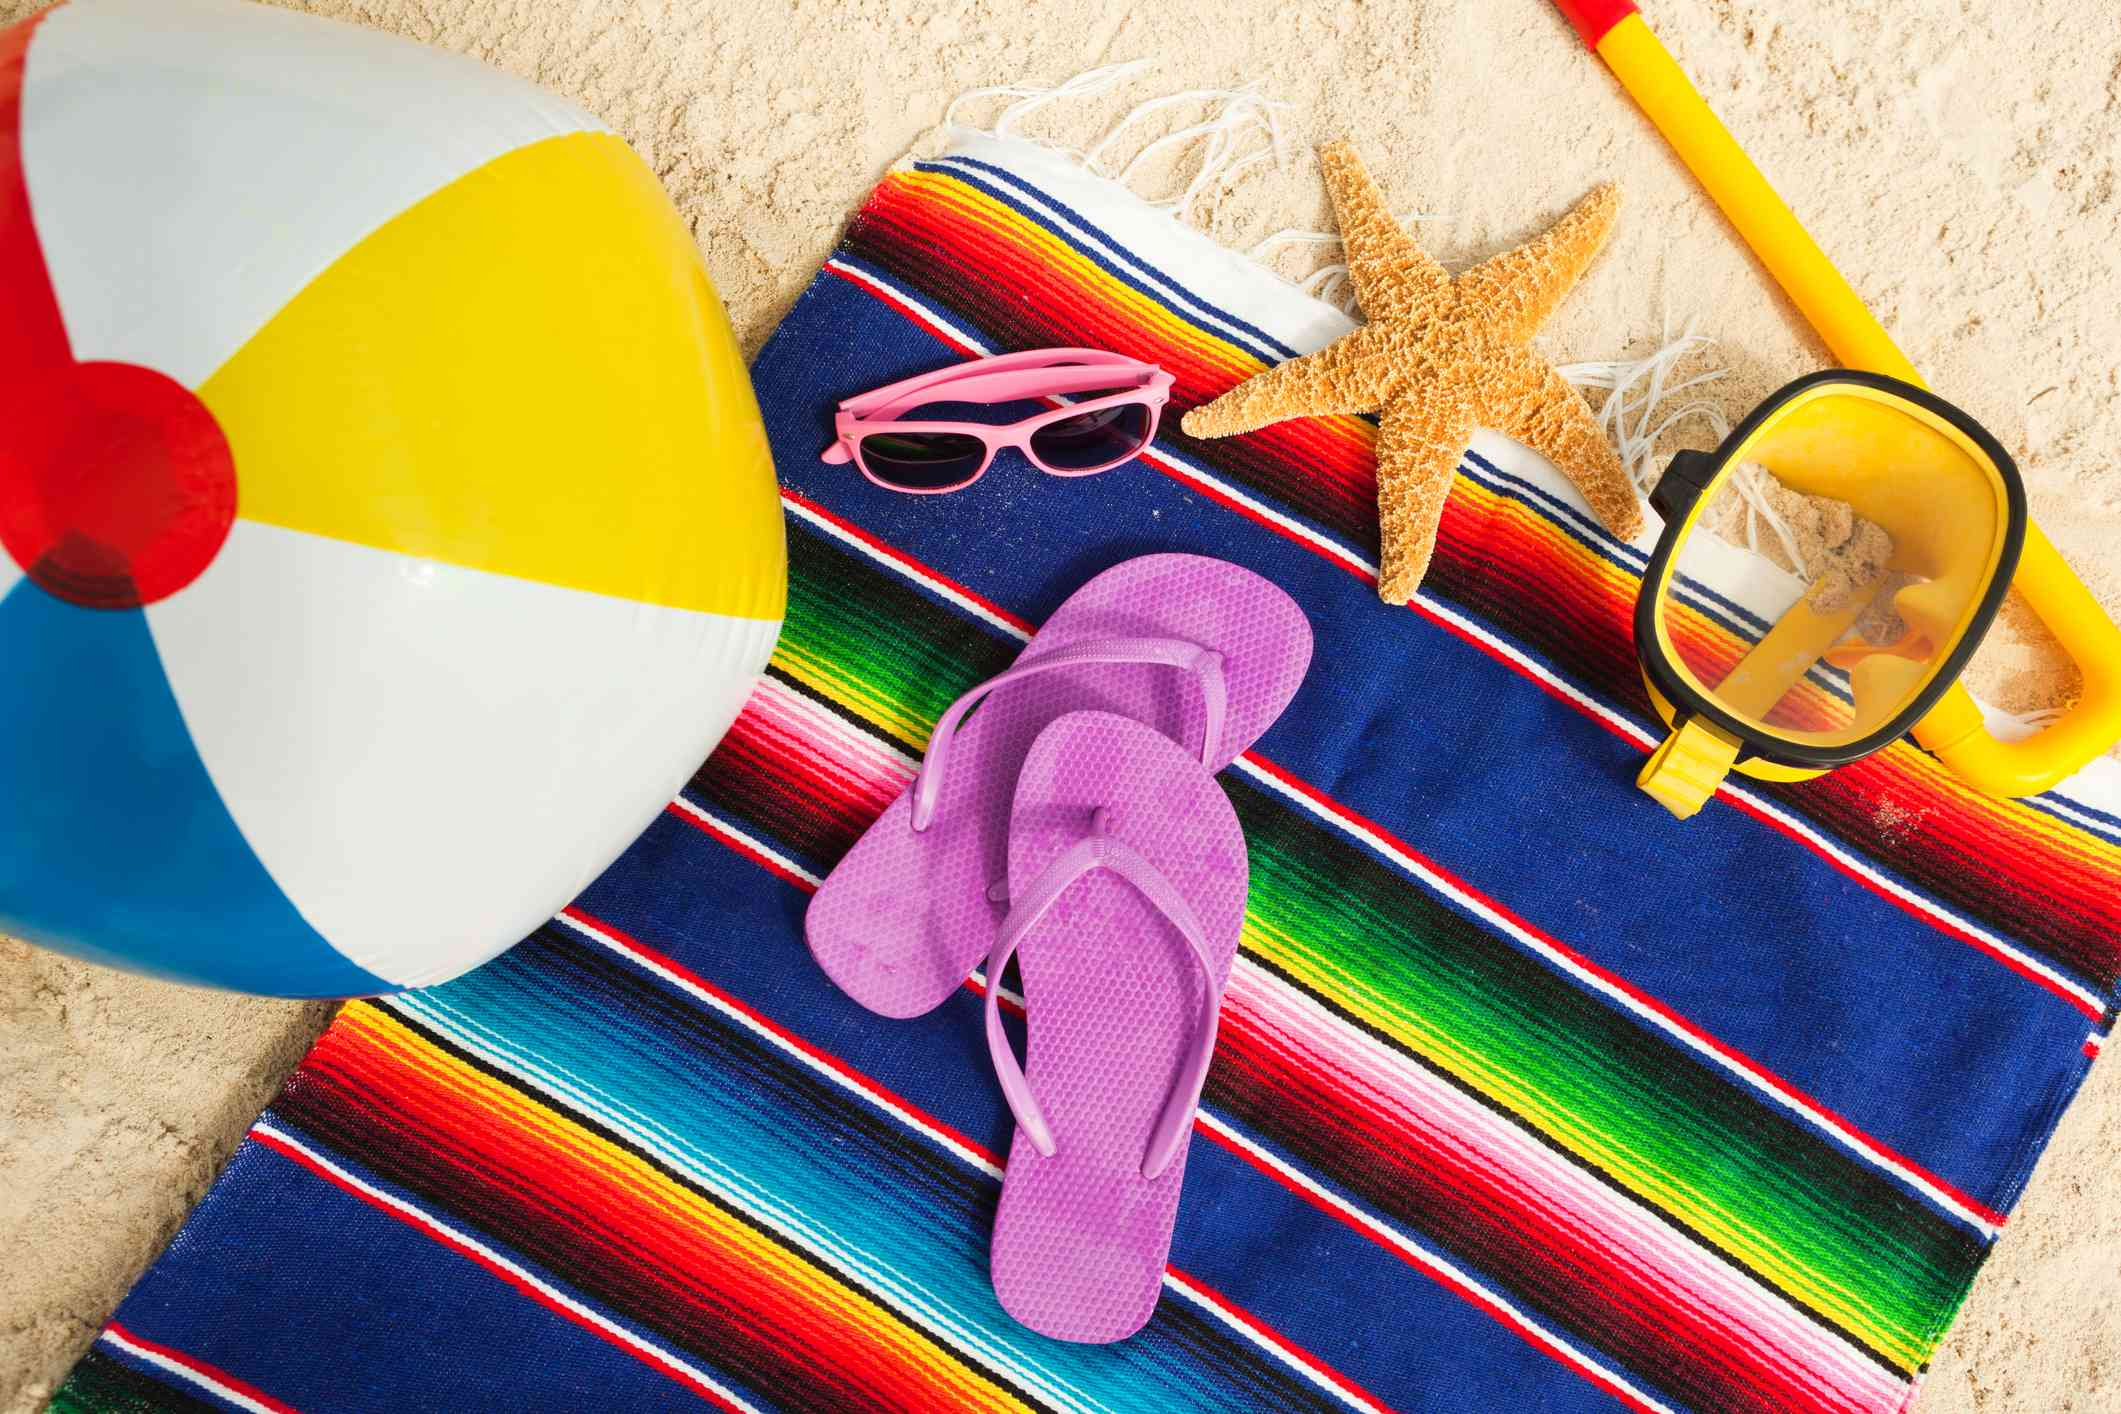 Beach Gear and Necessities for a Vacation